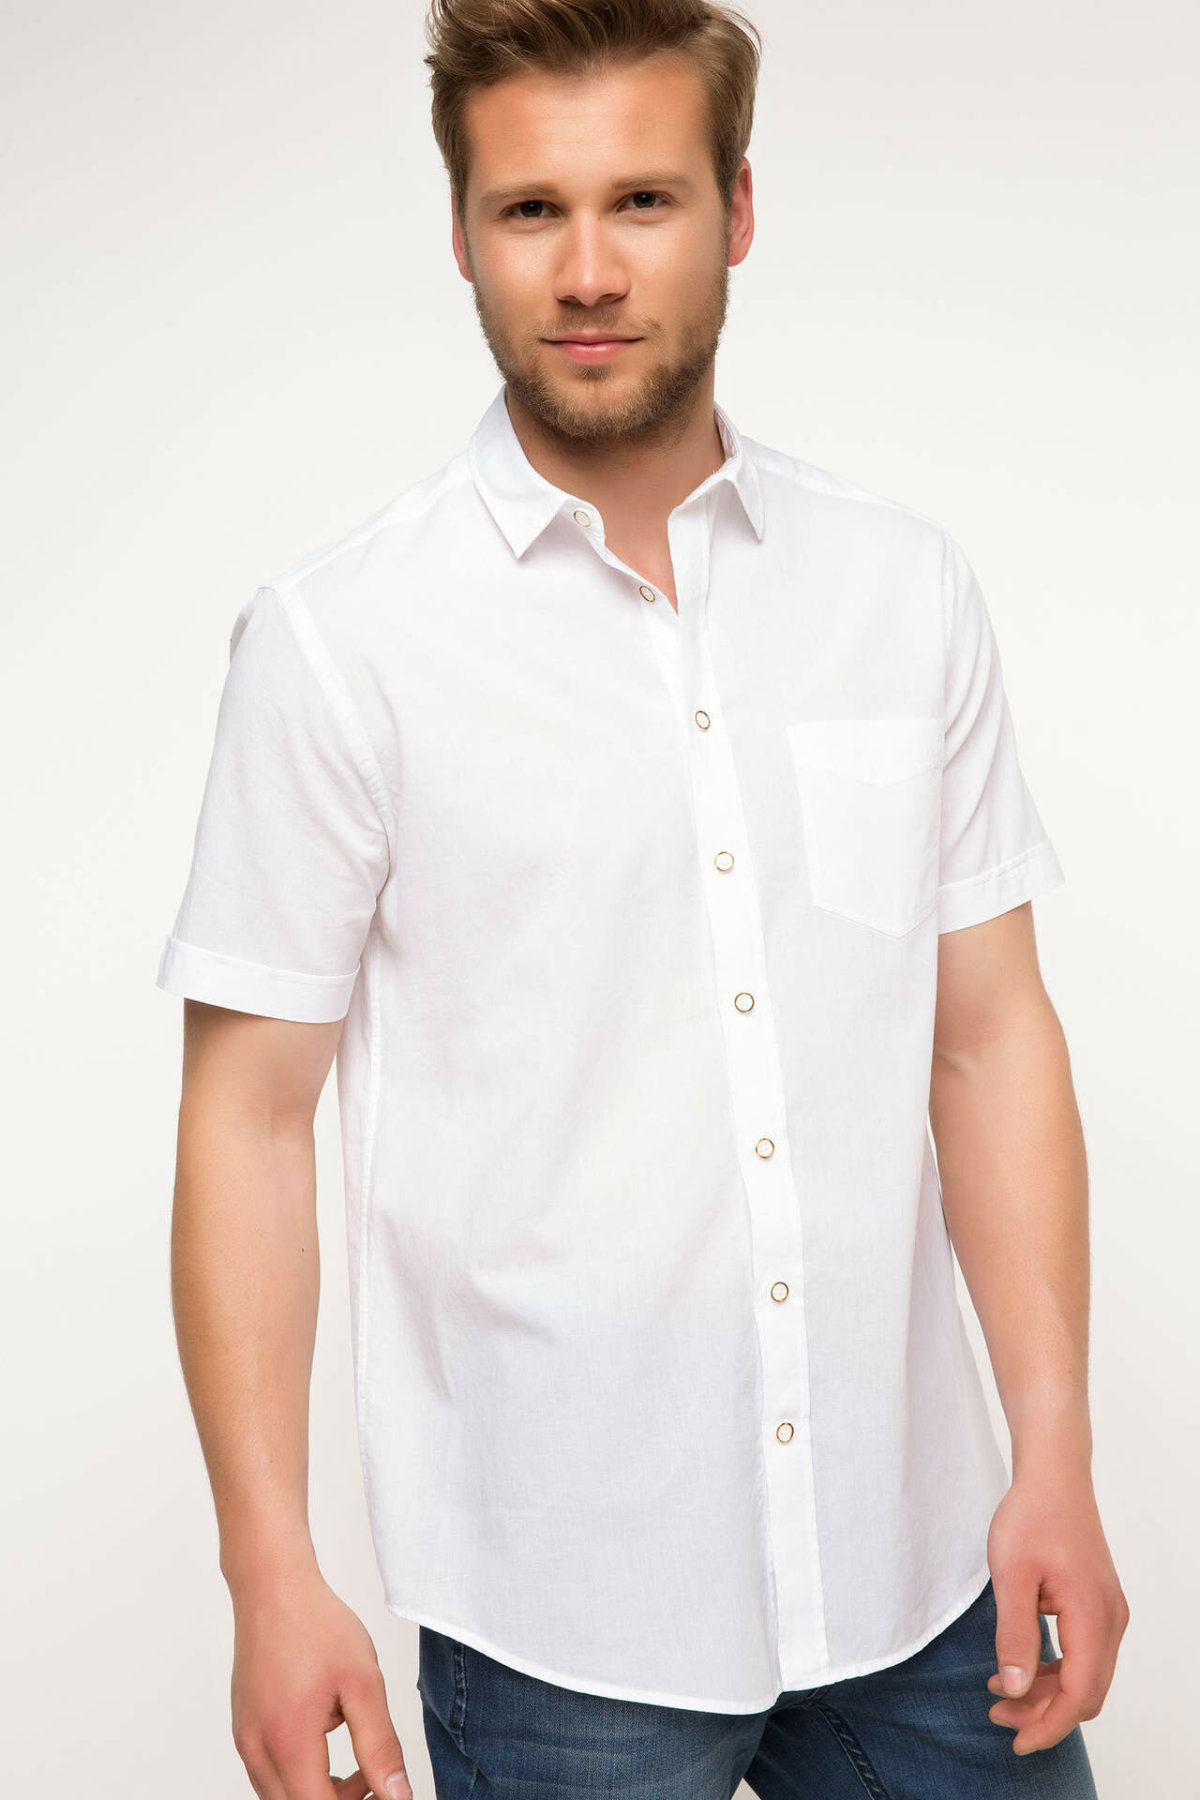 DeFacto Men Formal White Shirt Casual Woven Top Short Sleeve Shirt Office Business Wear Top Shirt New - G5882AZ17SM-G5882AZ17SM